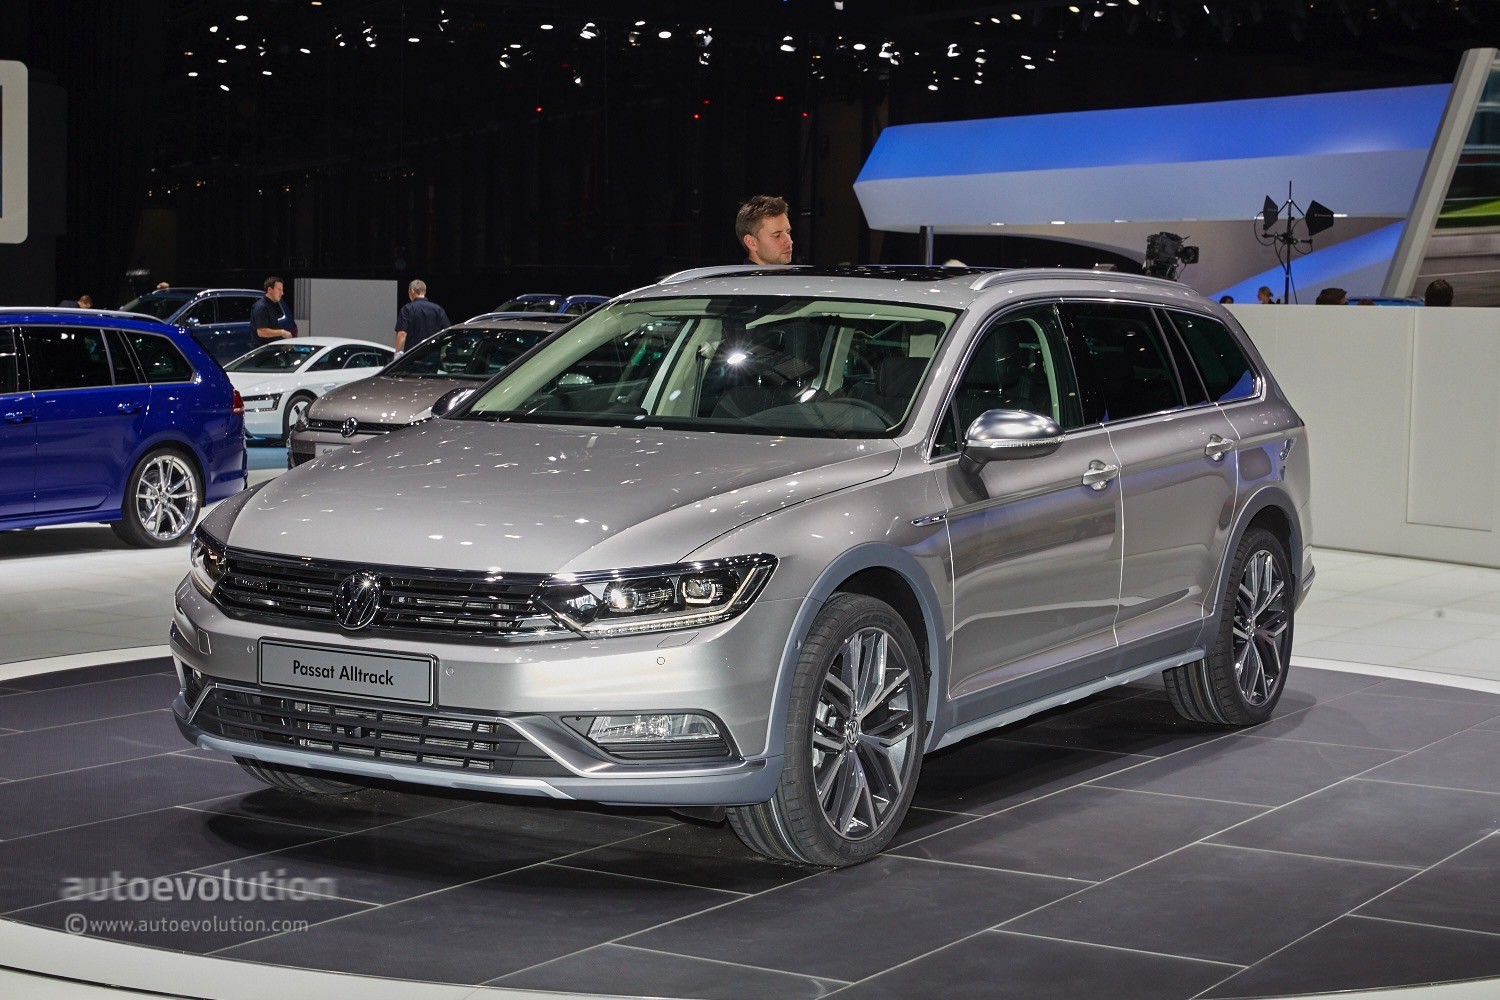 2015 volkswagen passat alltrack goes on sale in germany from 38 550 autoevolution. Black Bedroom Furniture Sets. Home Design Ideas